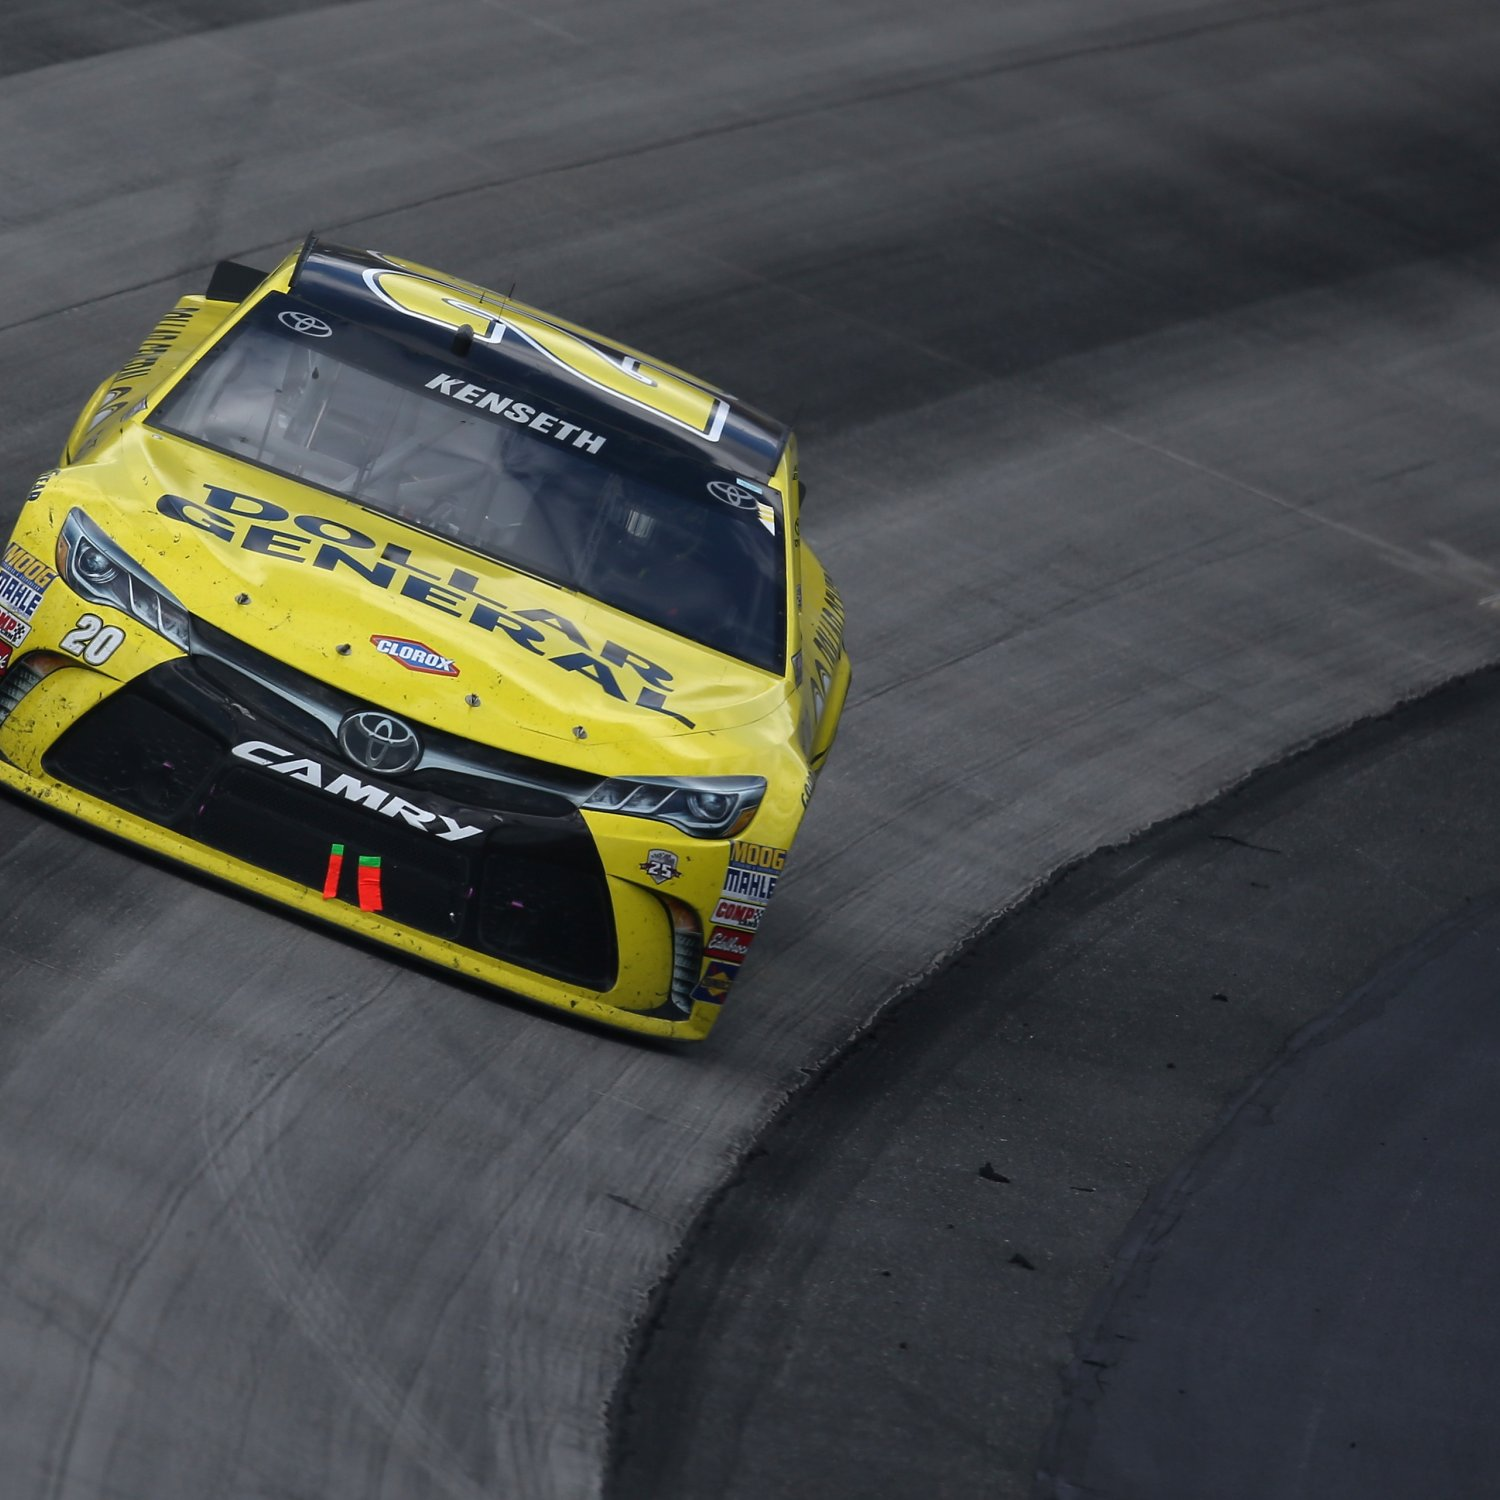 NASCAR at Dover 2016 Results: Winner, Standings, Highlights and Reaction | Bleacher Report